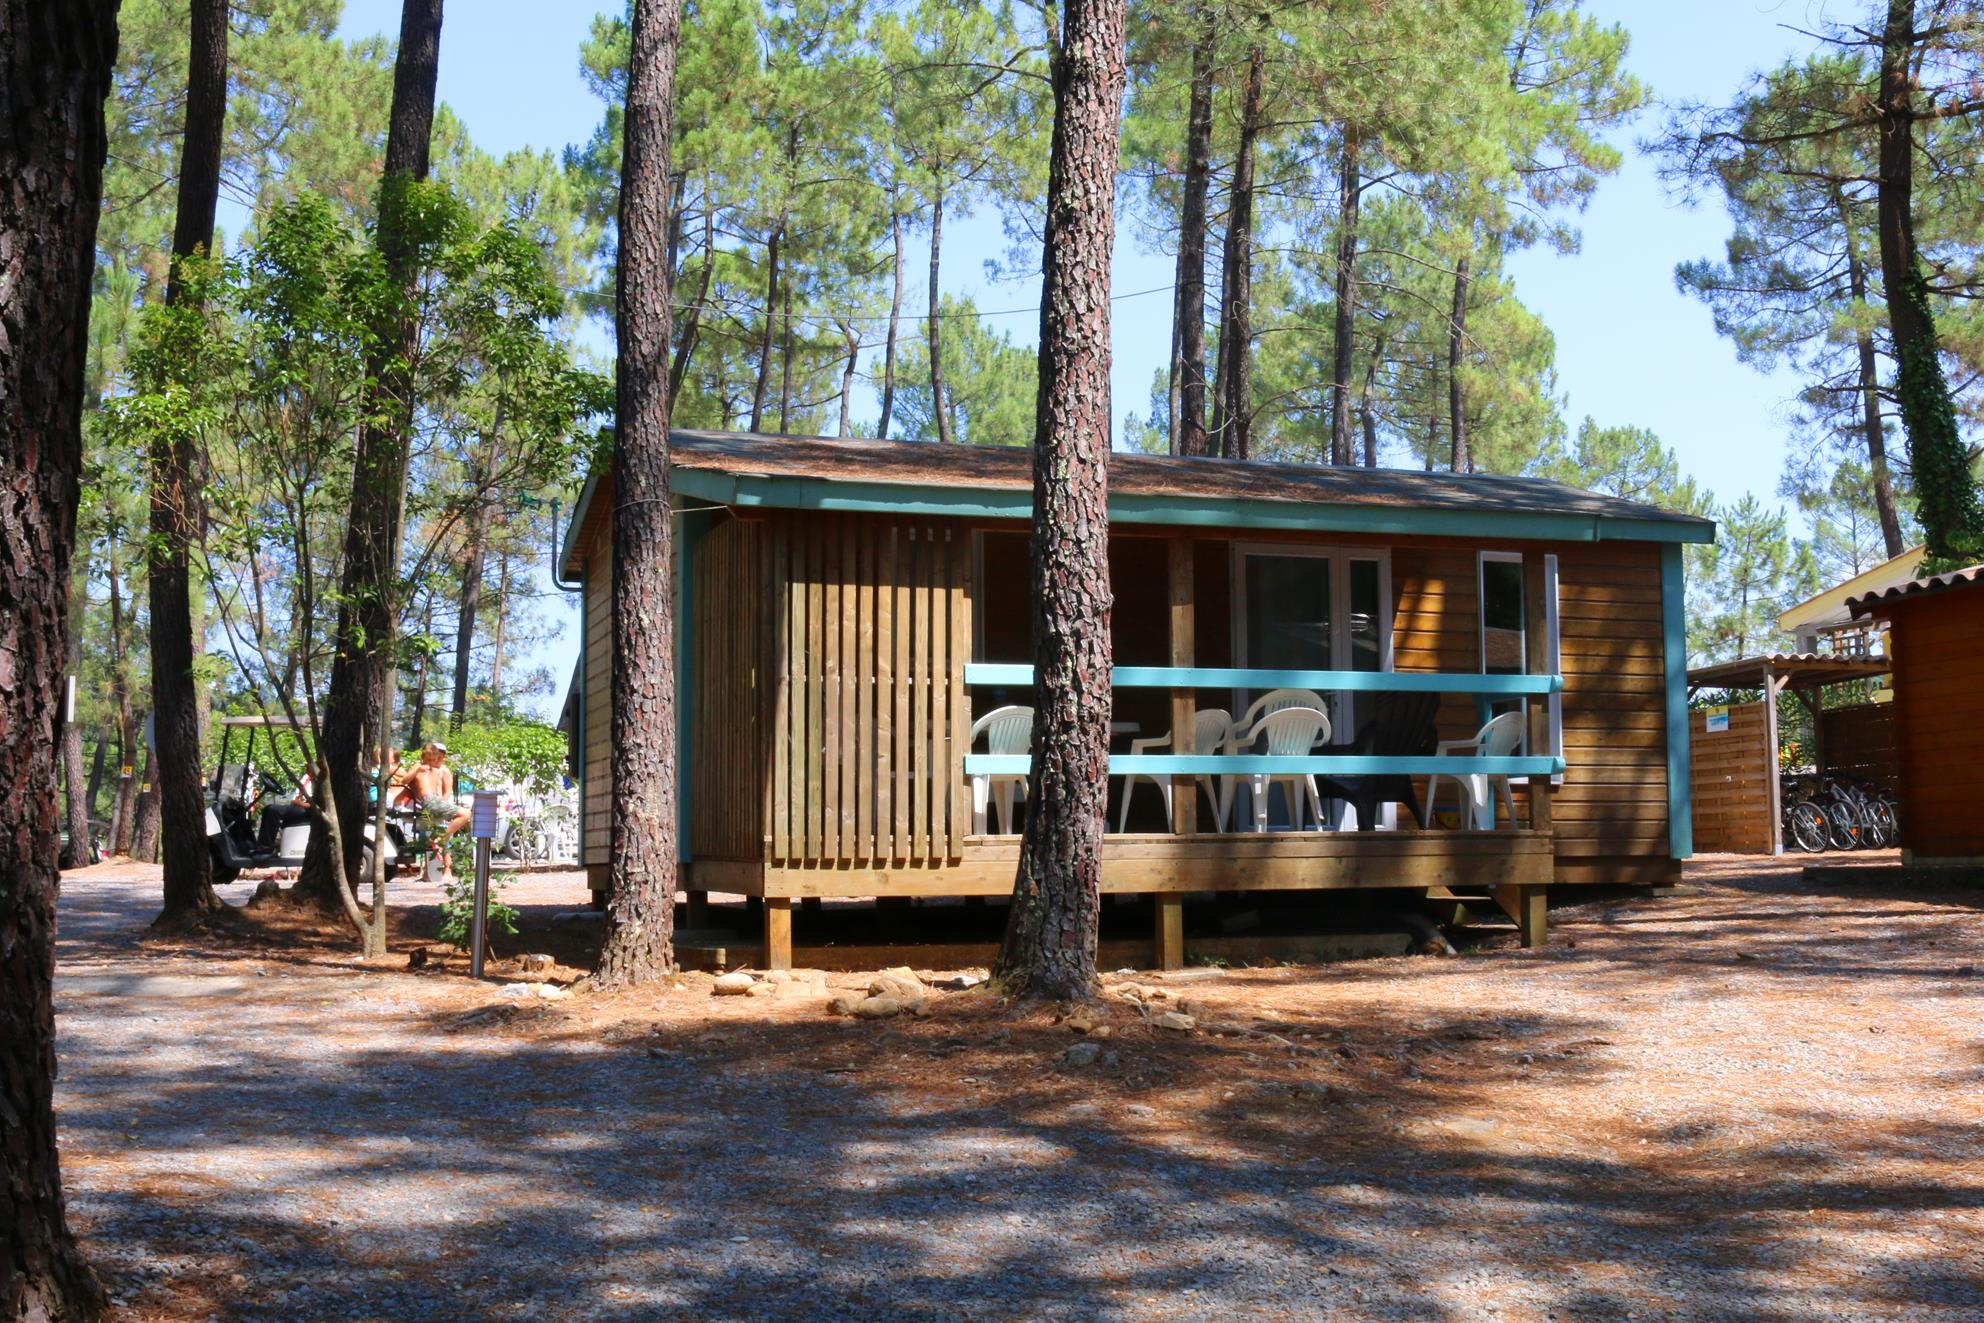 Huuraccommodatie - Chalet Mimosa - 2 Kamers - Camping Bois Simonet